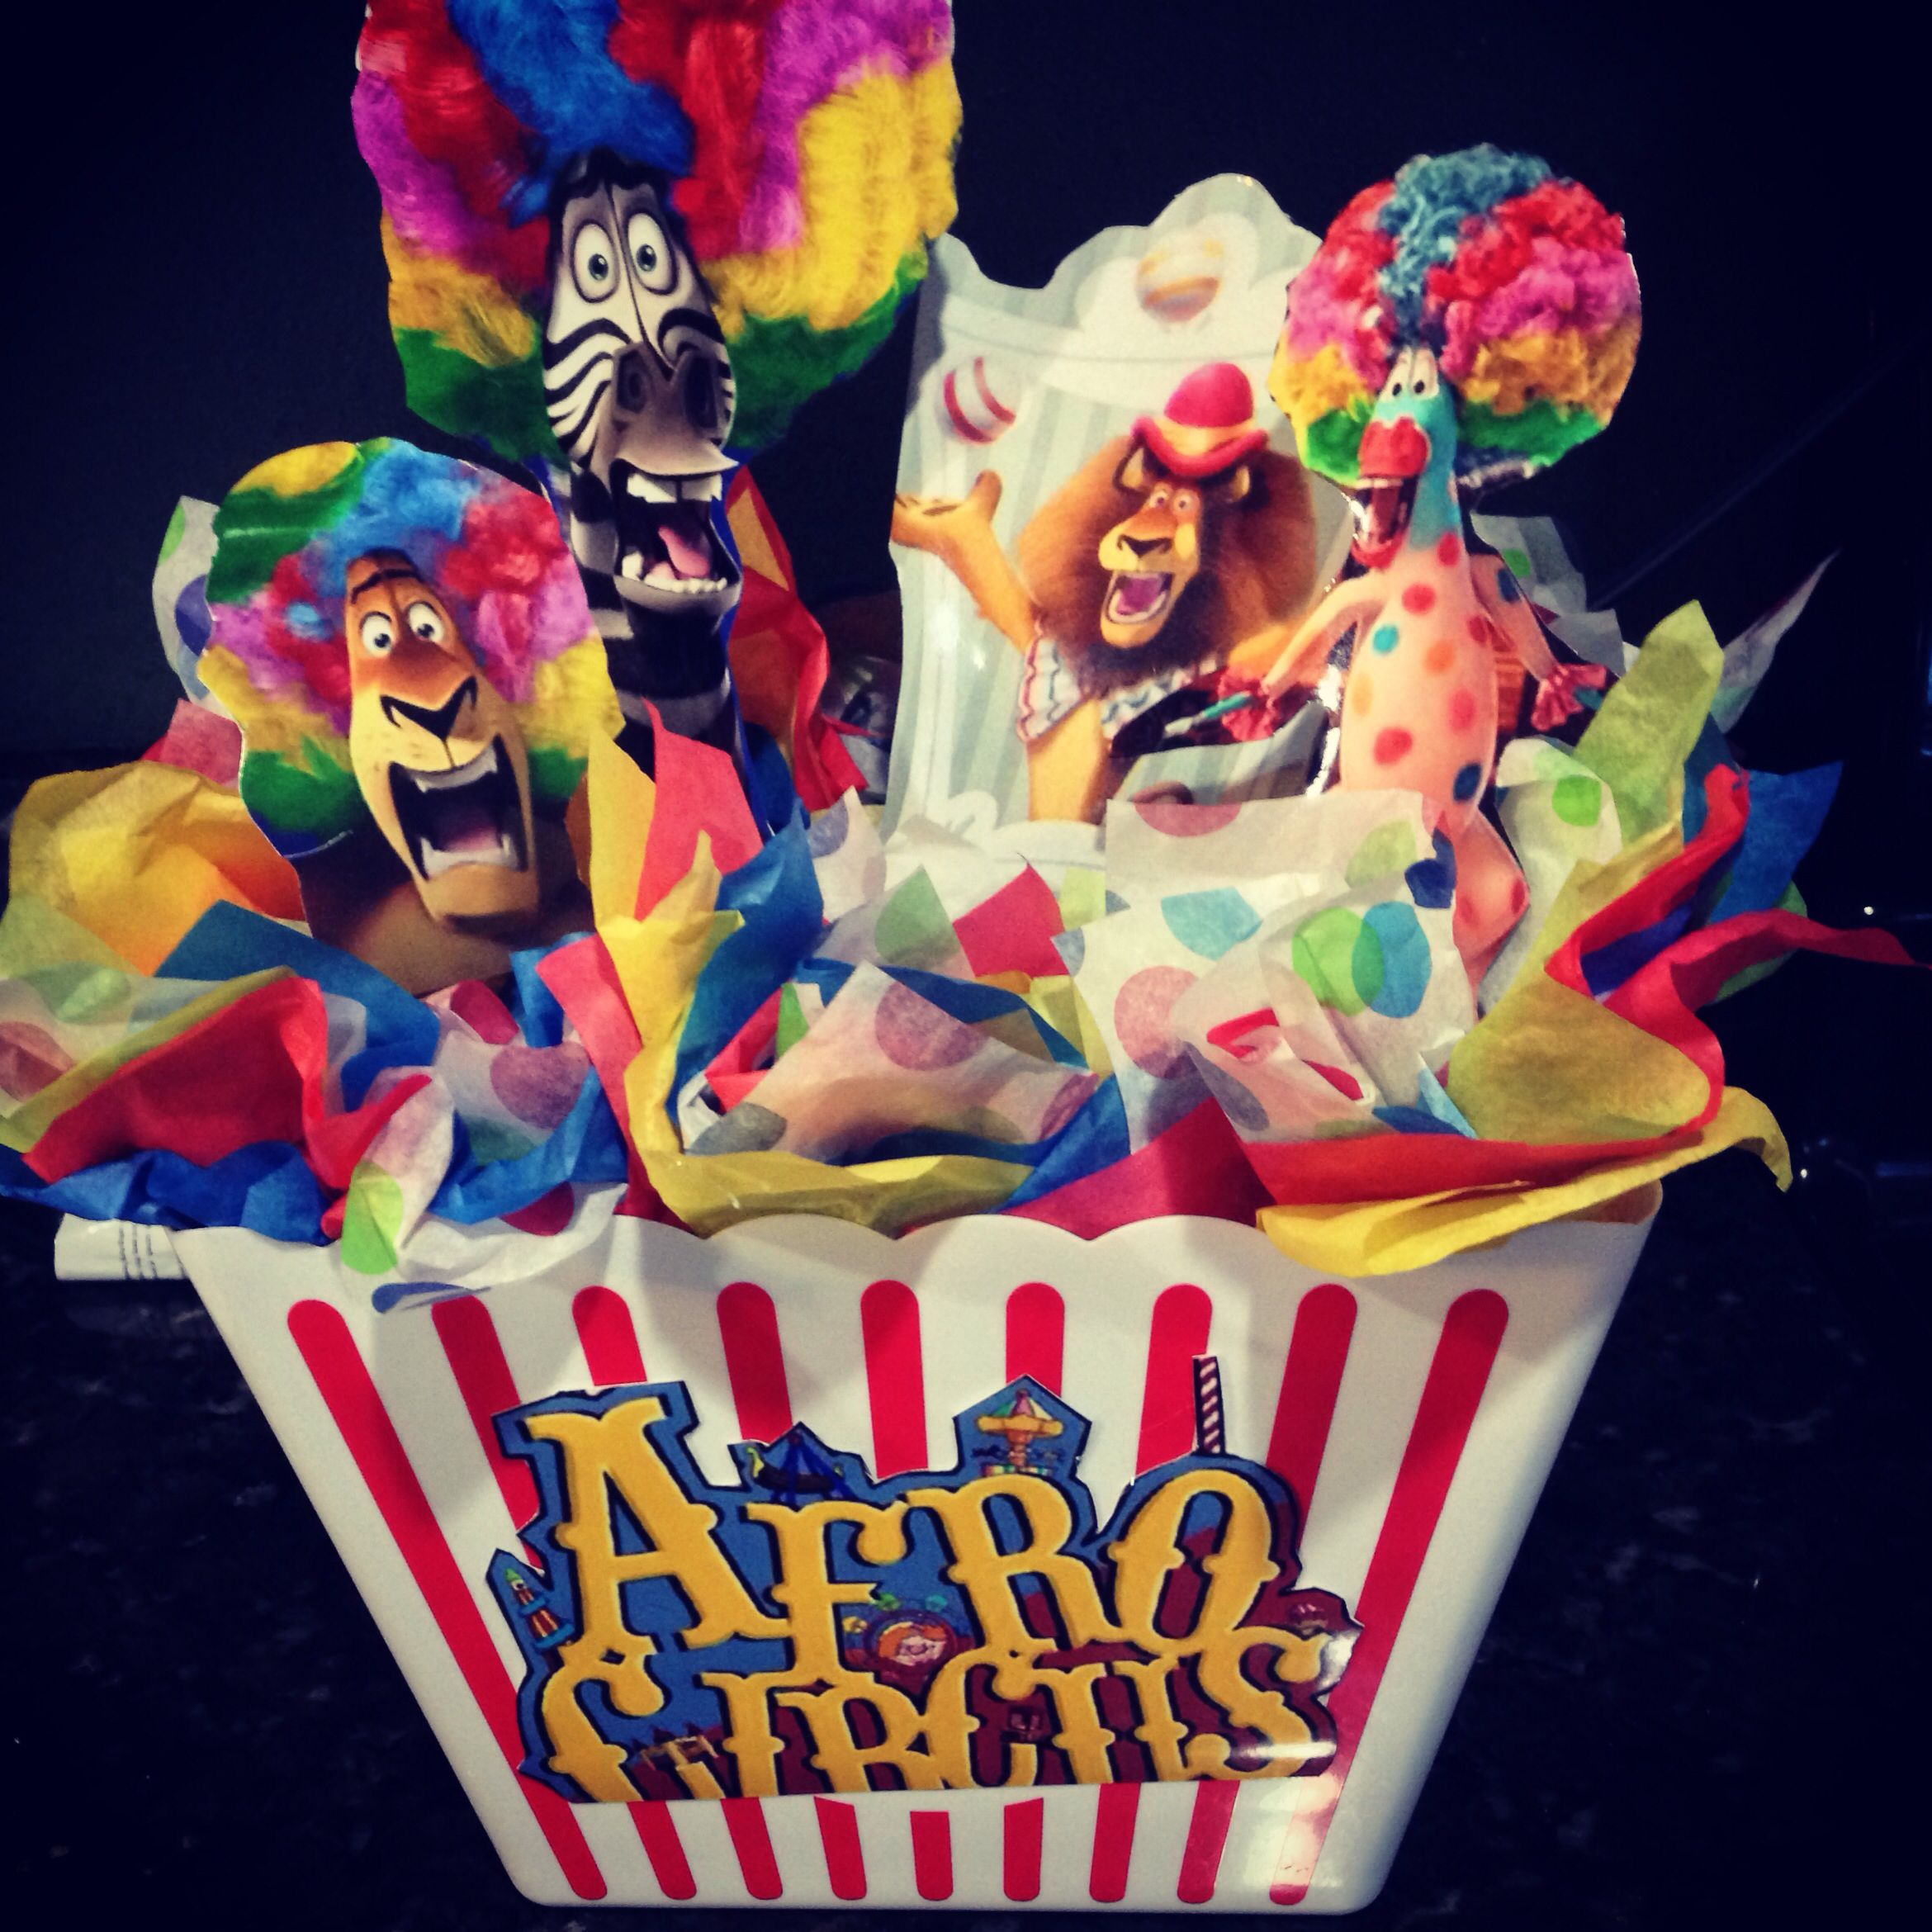 Centerpiece #madagascar3 #circus #decorations